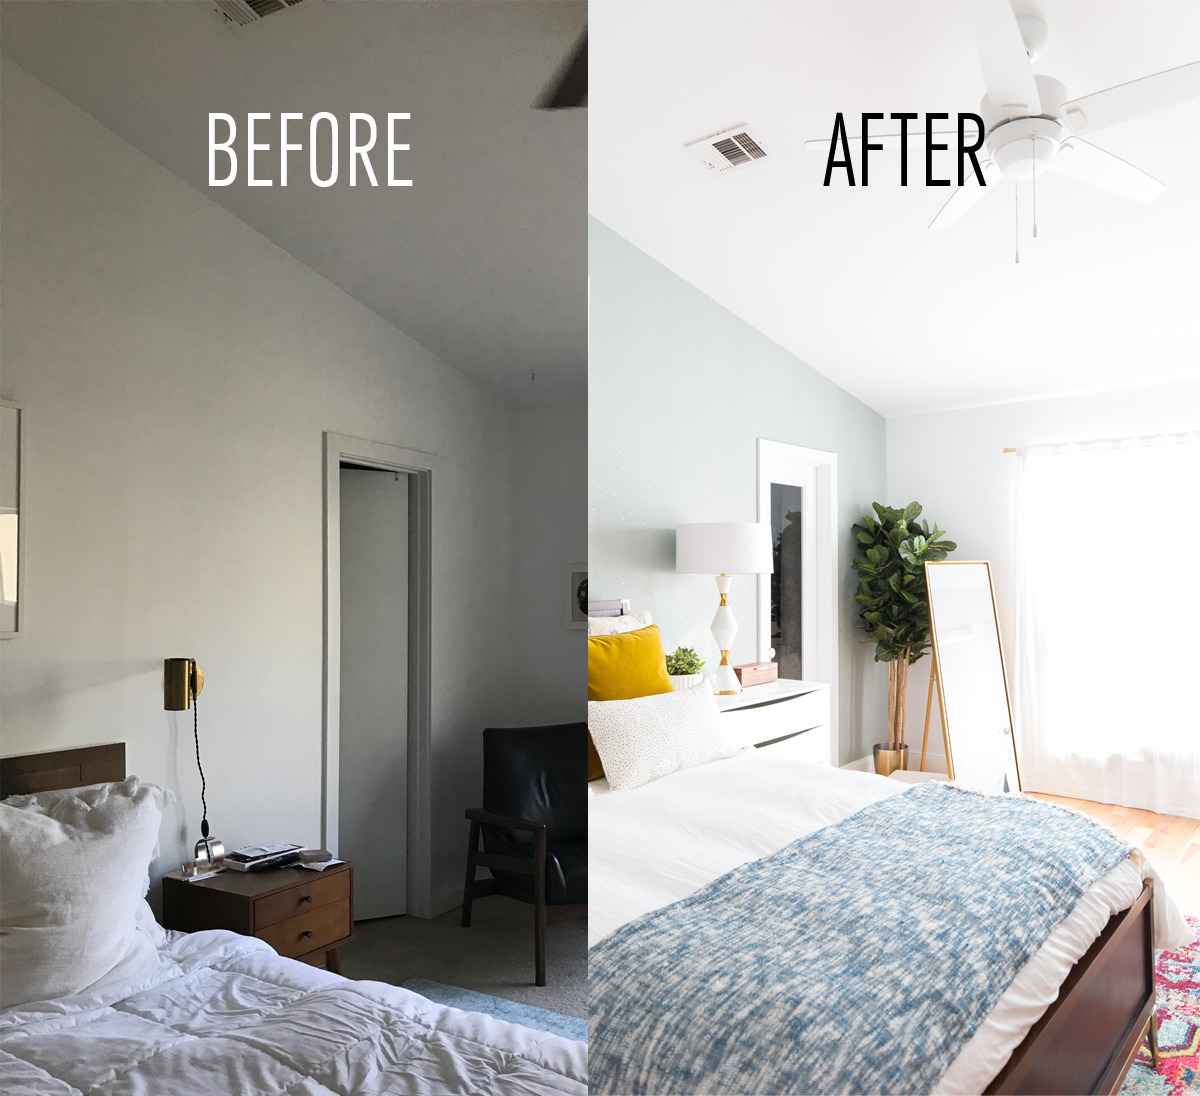 https://www.summareconbekasi.com/public/images/gallery/article/12265/before-and-after-bedroom-2.png